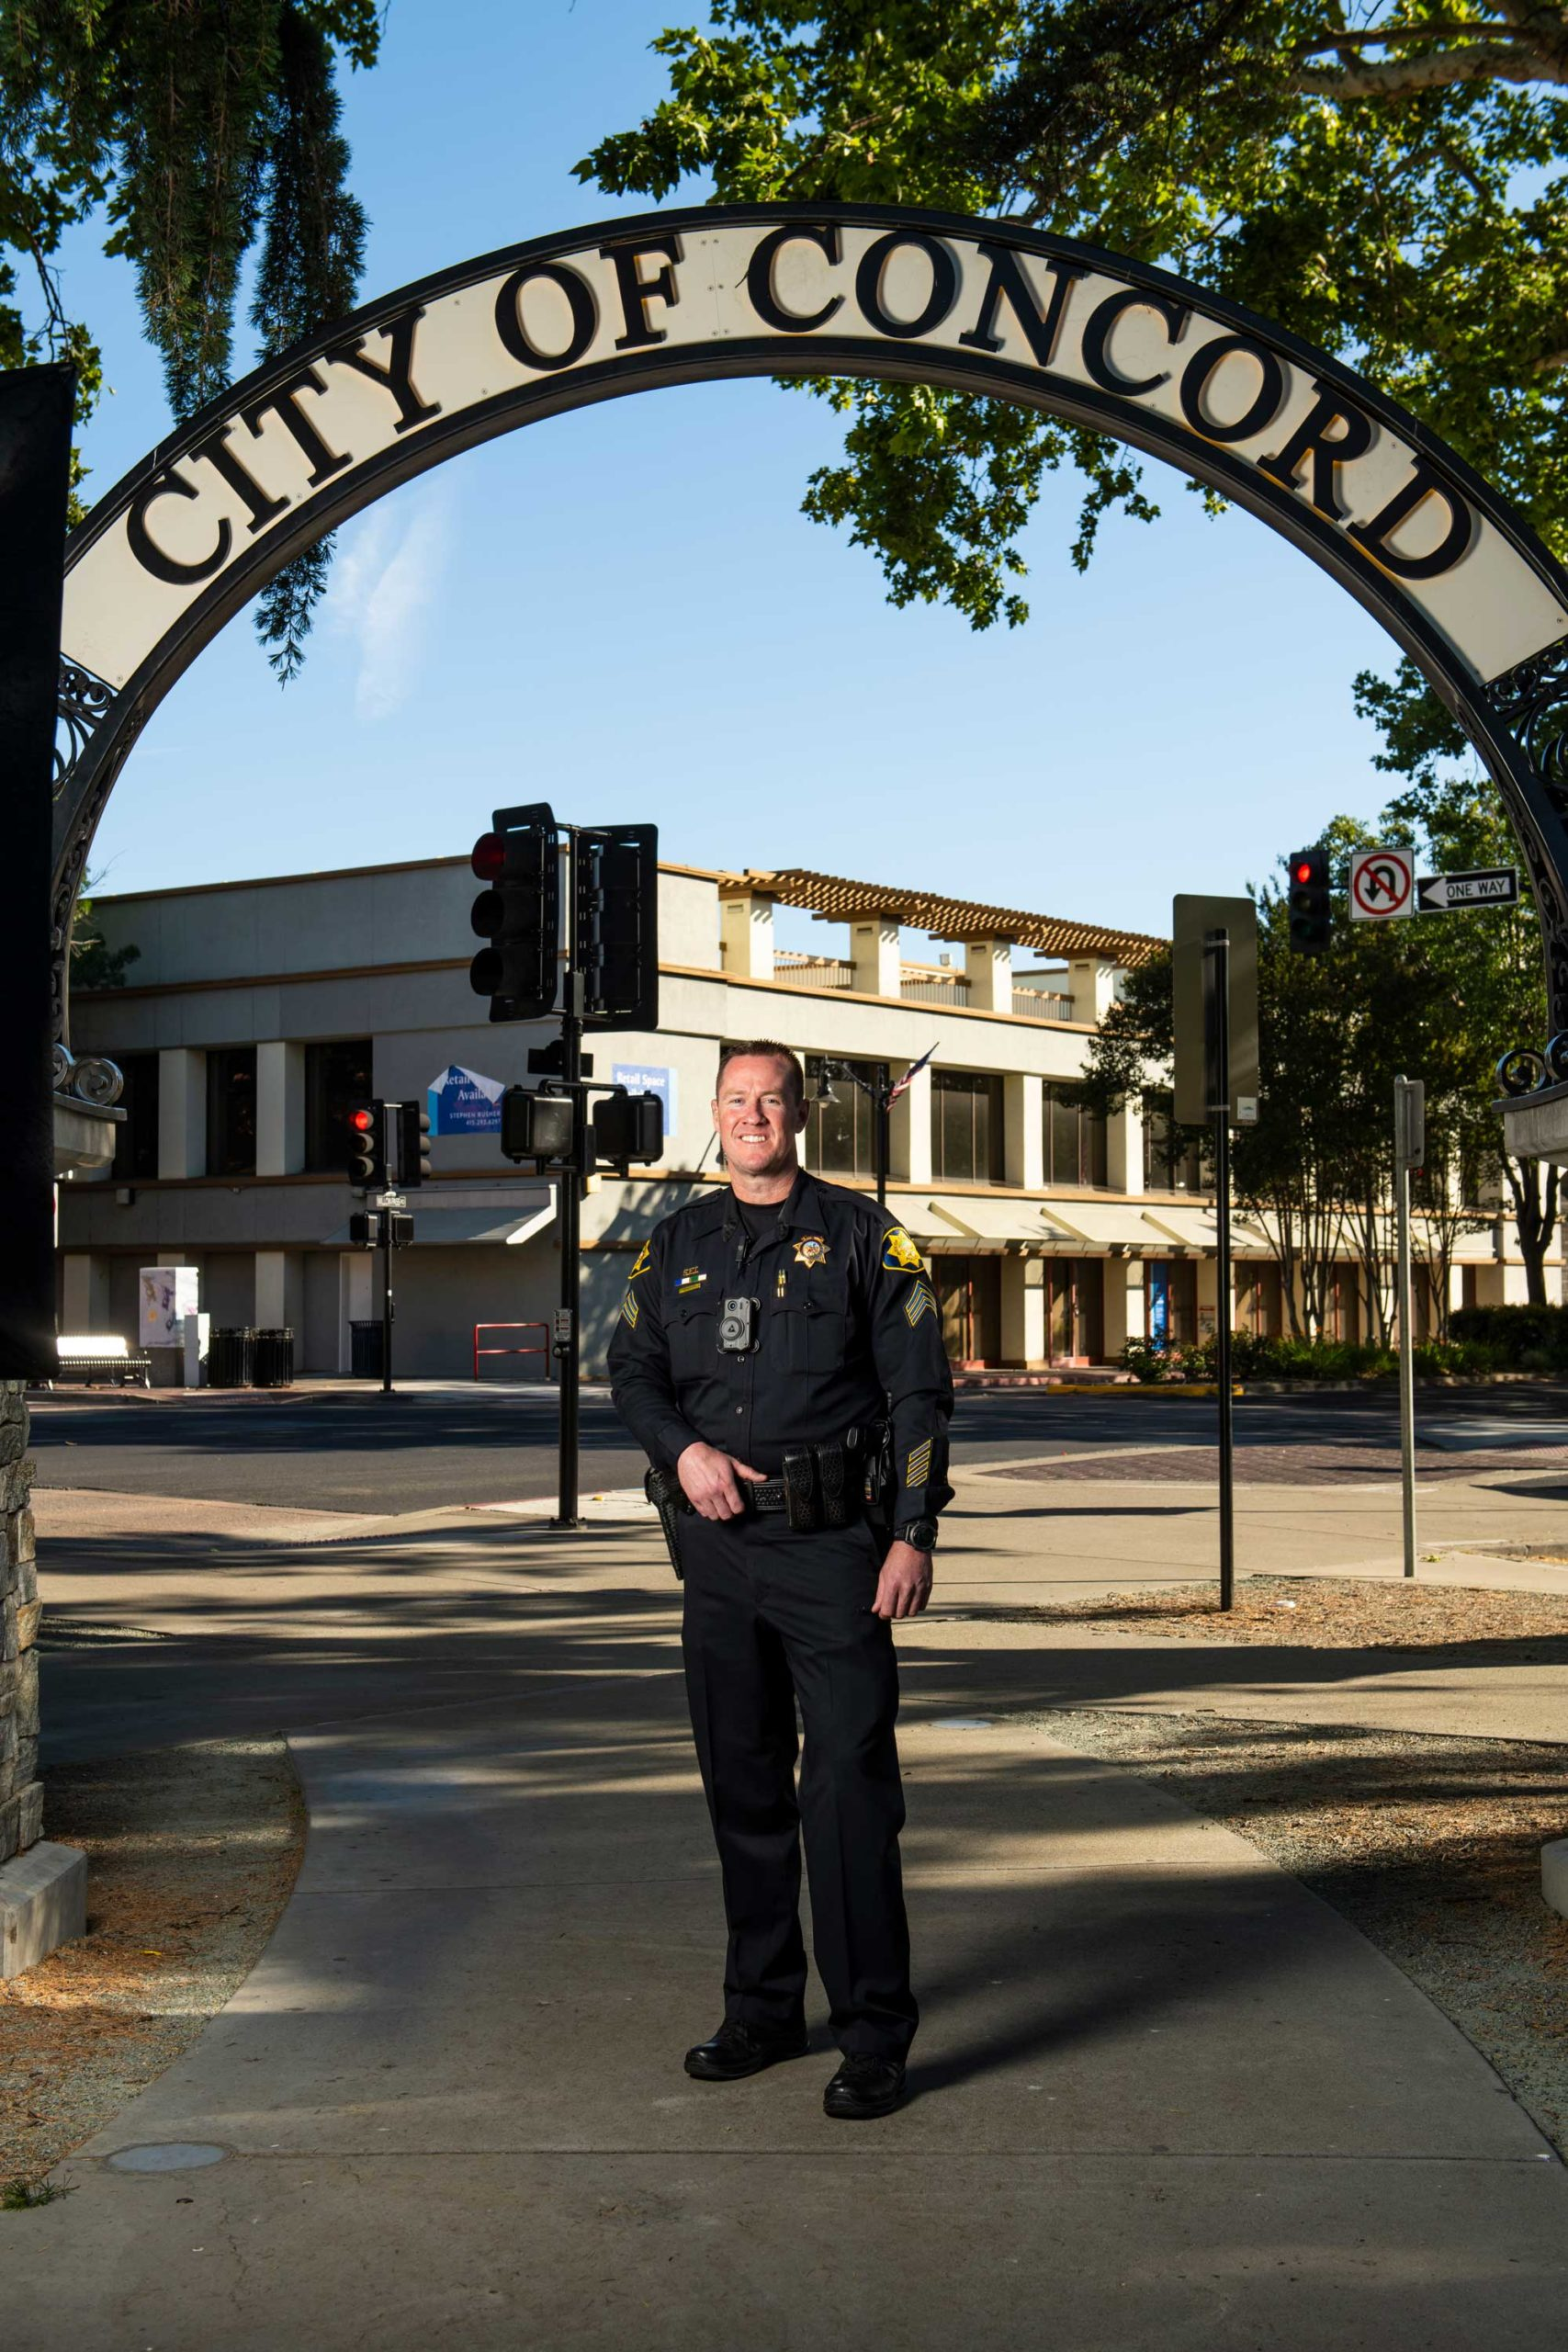 smiling police officer in uniform under City of Concord sign